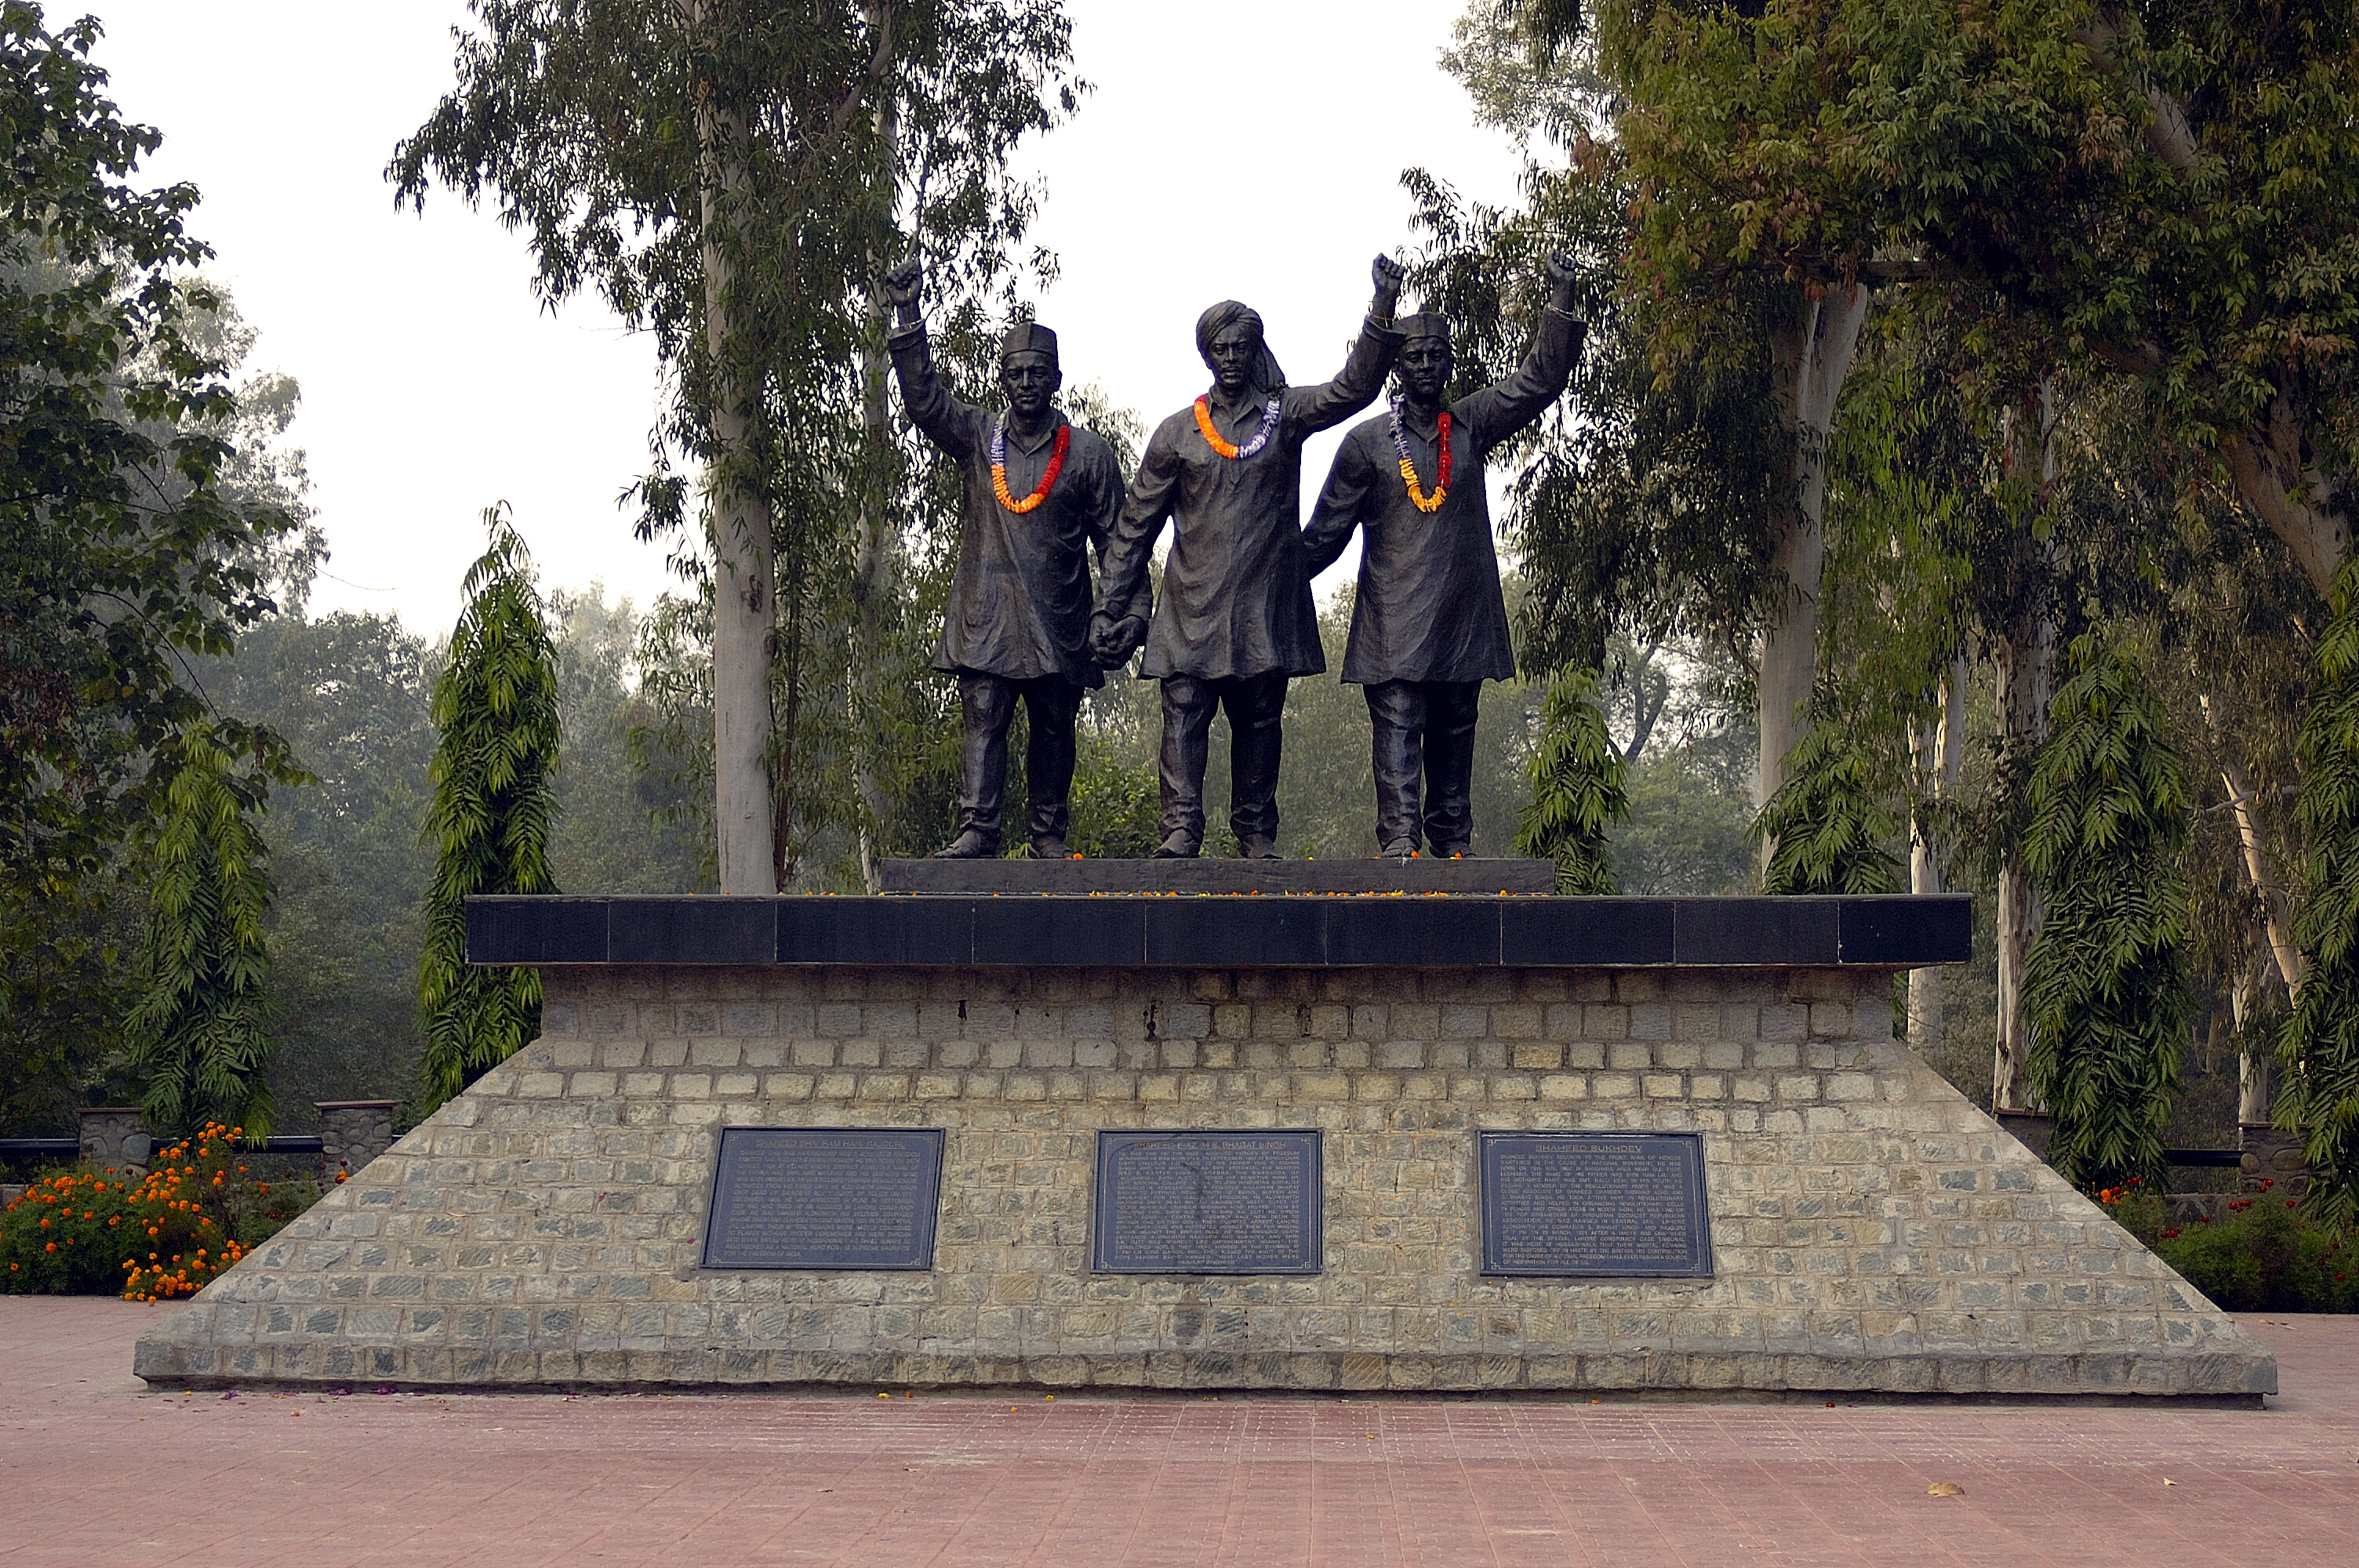 Bhagat Singh, Sukhdev and Rajguru were hanged in Lahore Jail on March 23, 1931.